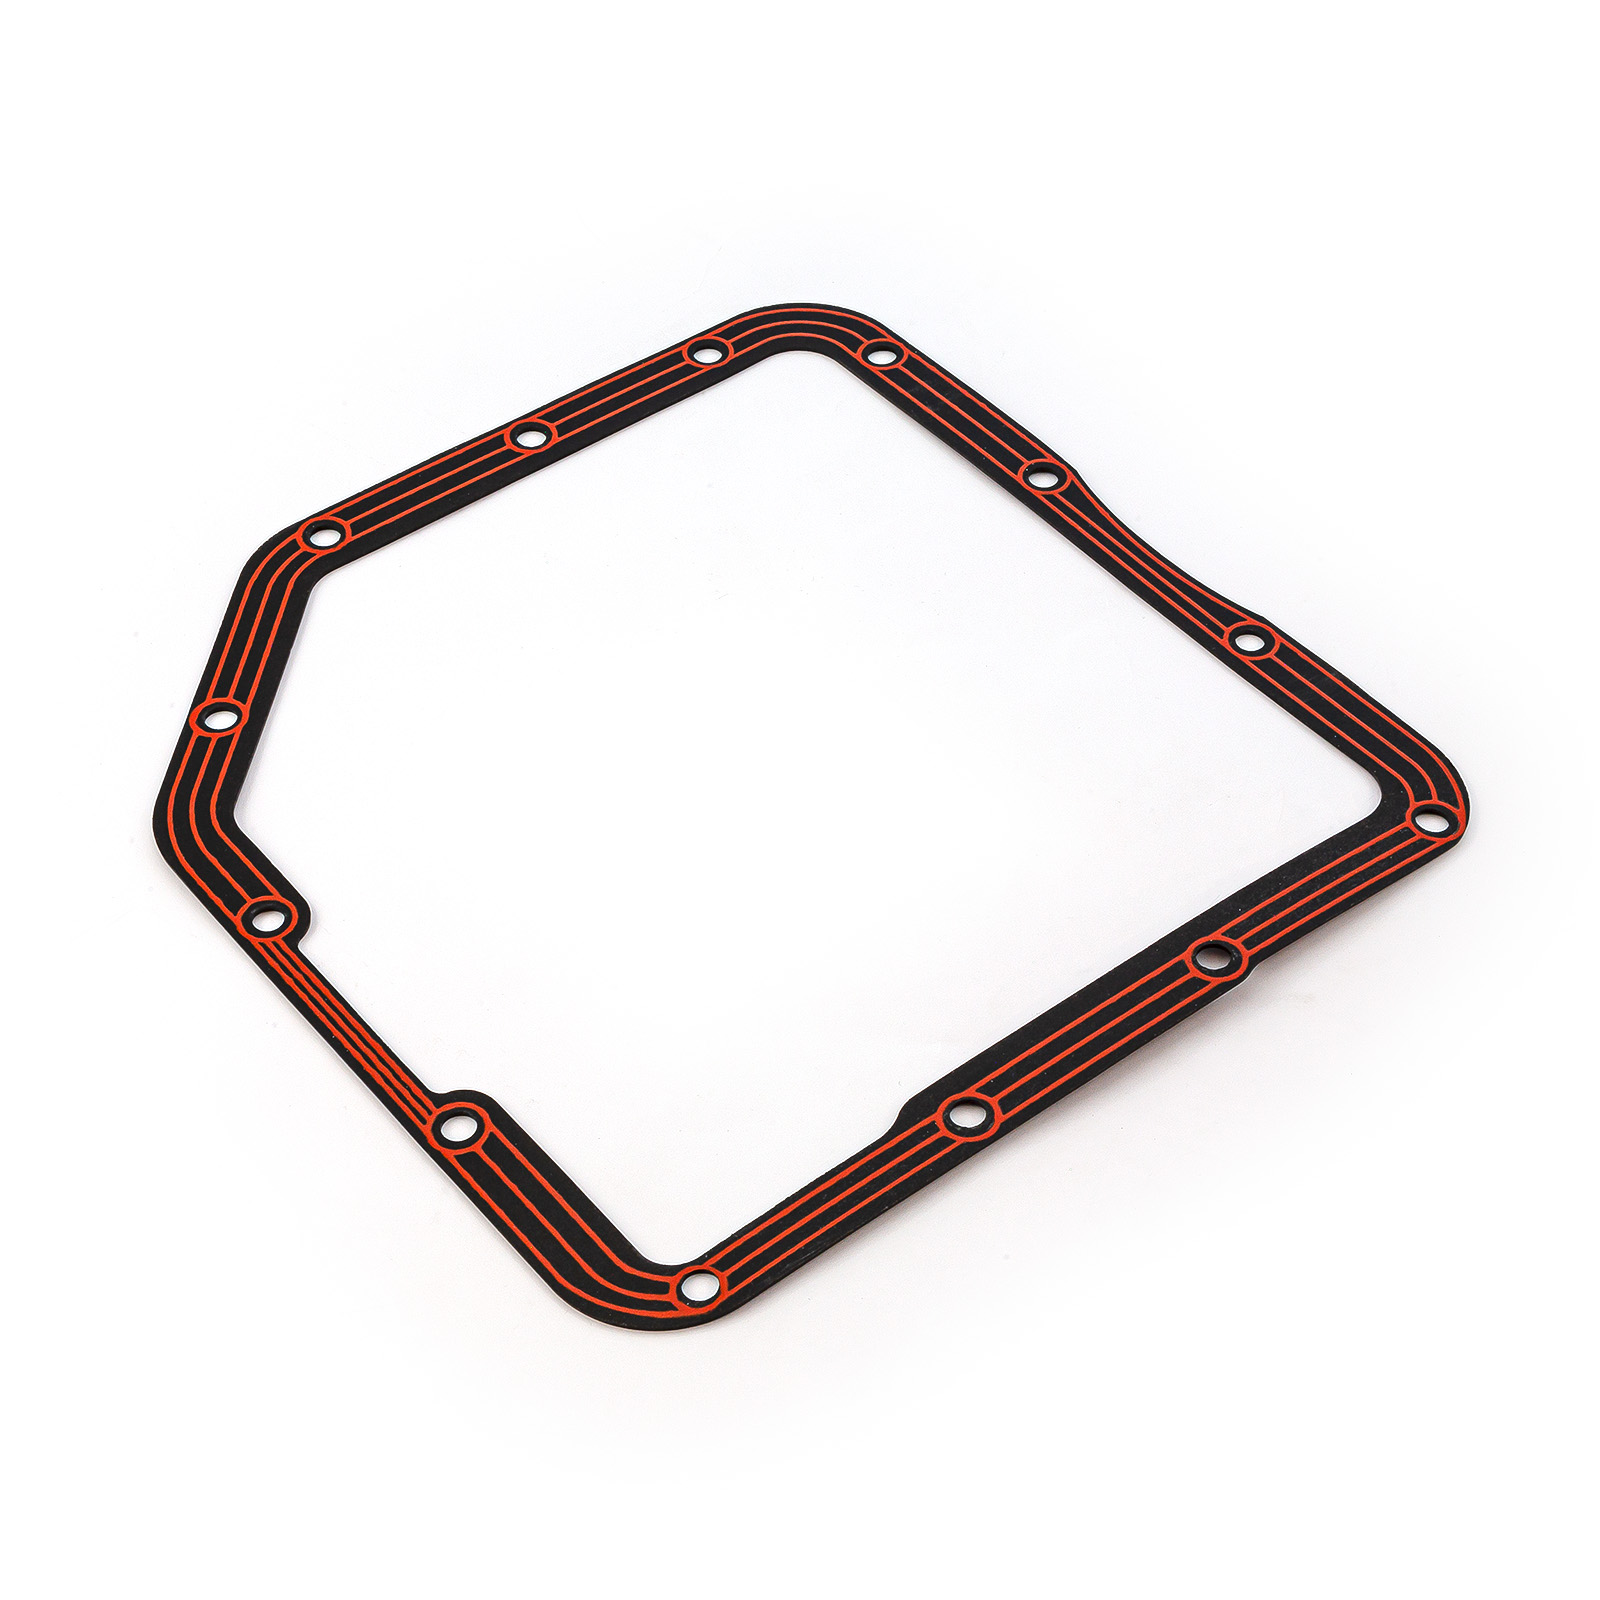 TH350 Turbo 350 Transmission Pan Gasket Steel with Rubber